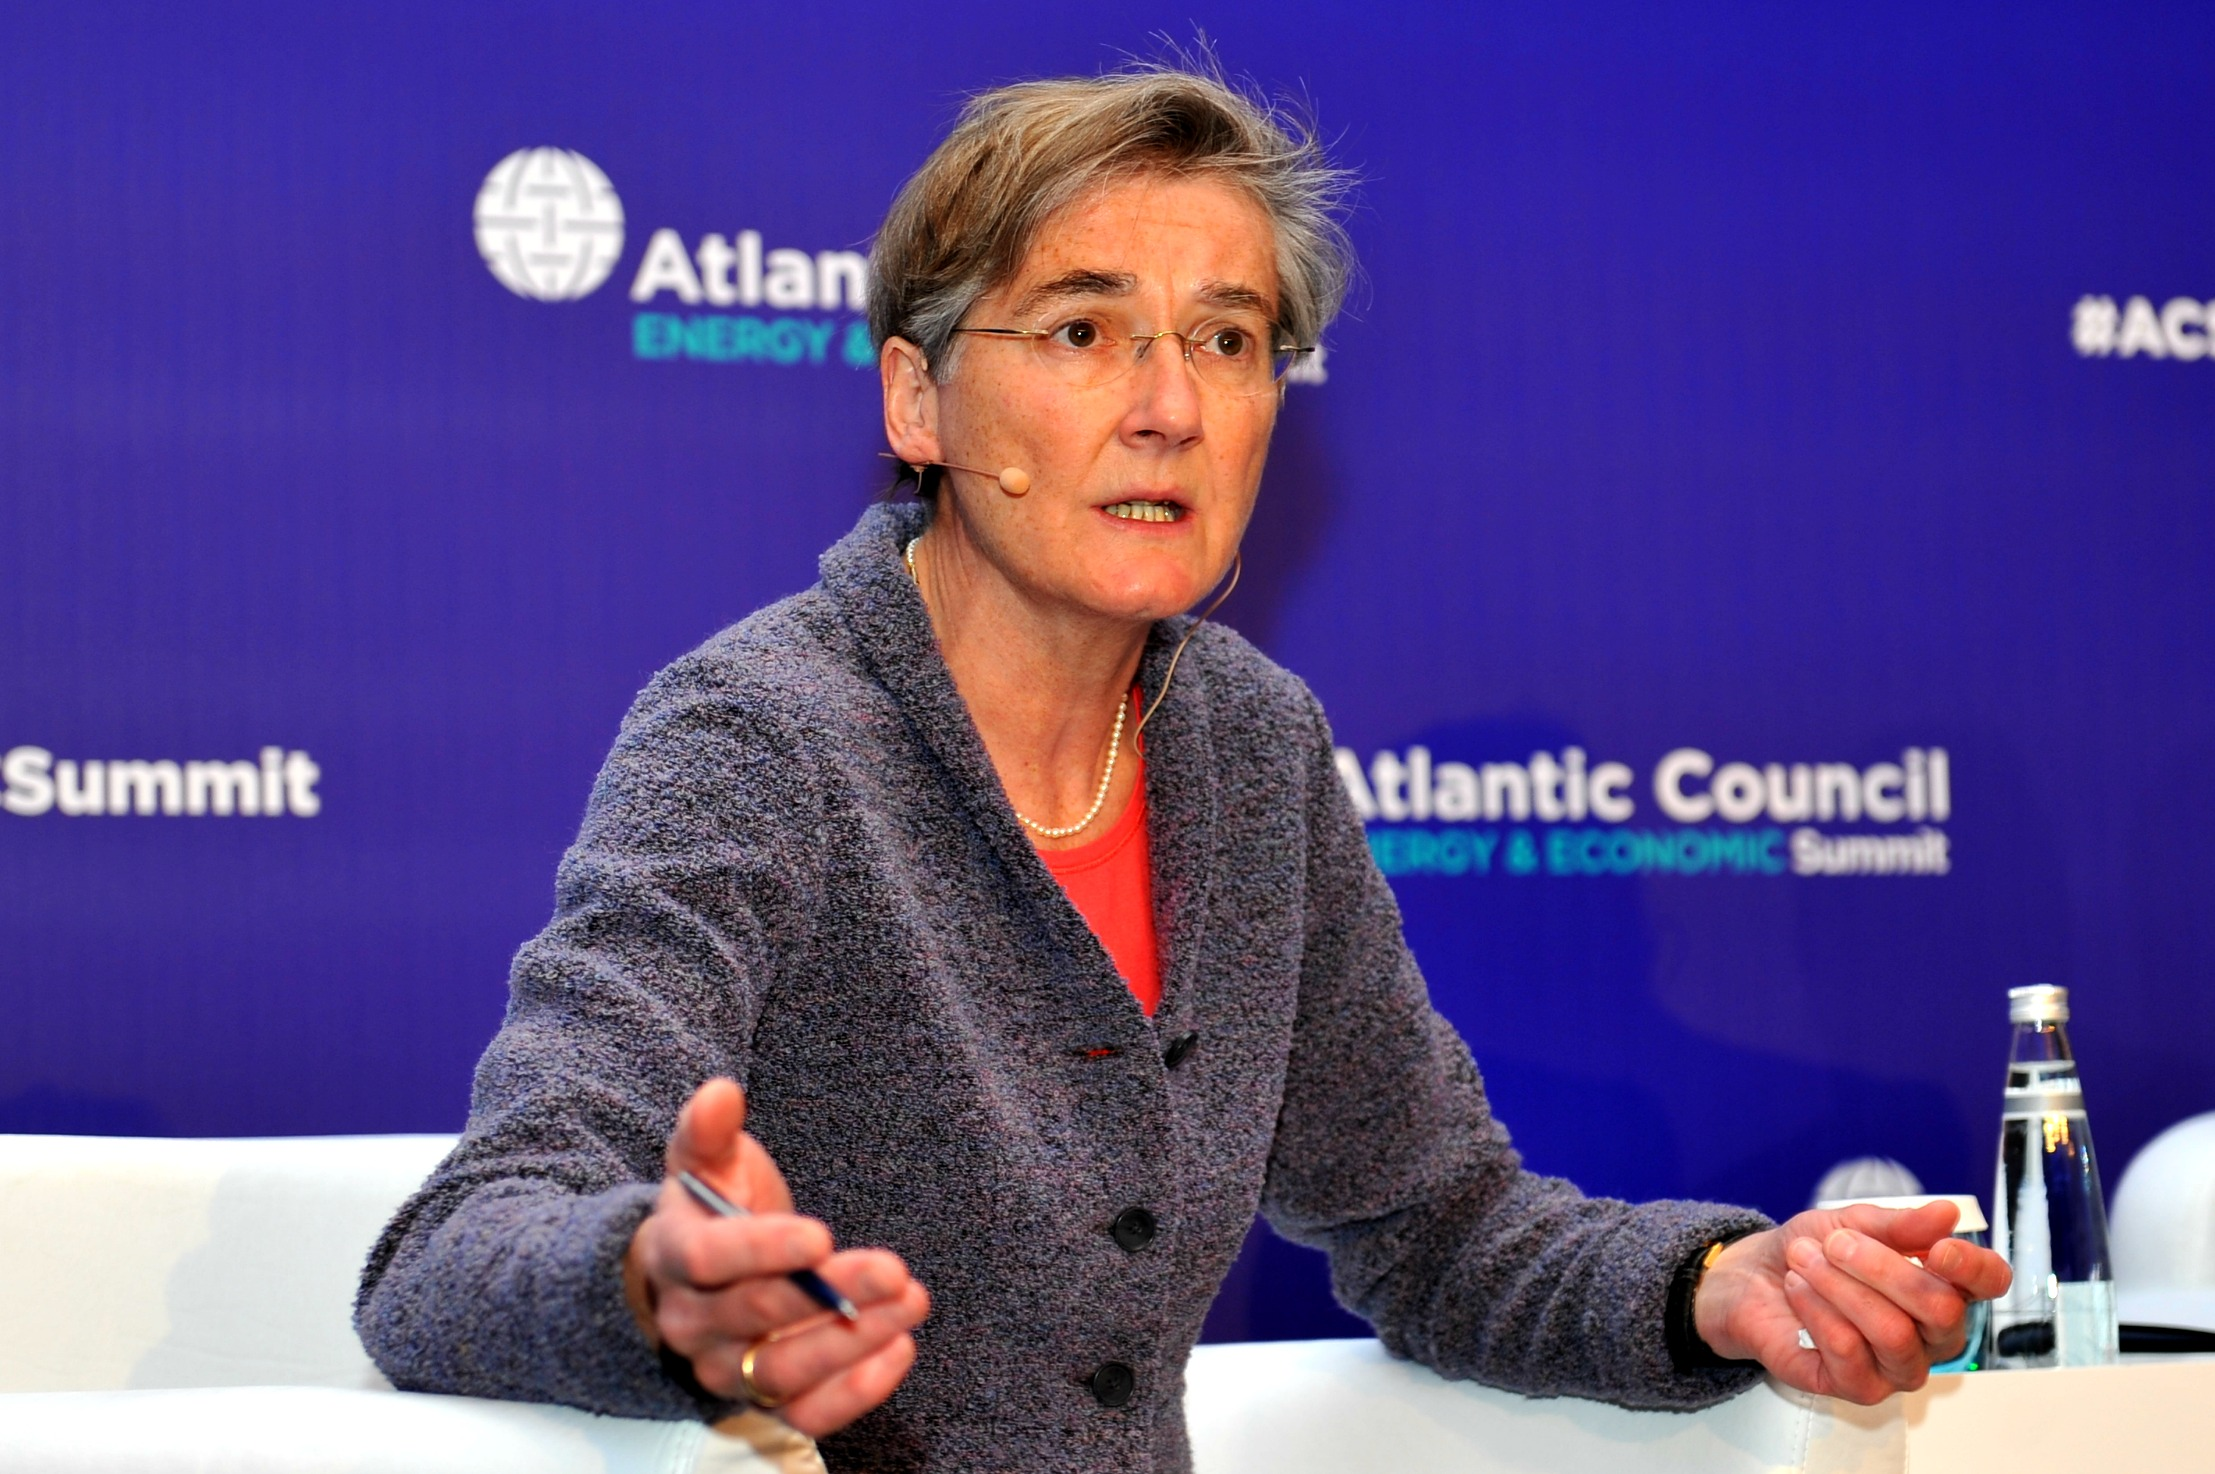 Judy Dempsey [Atlantic Council/Flickr]